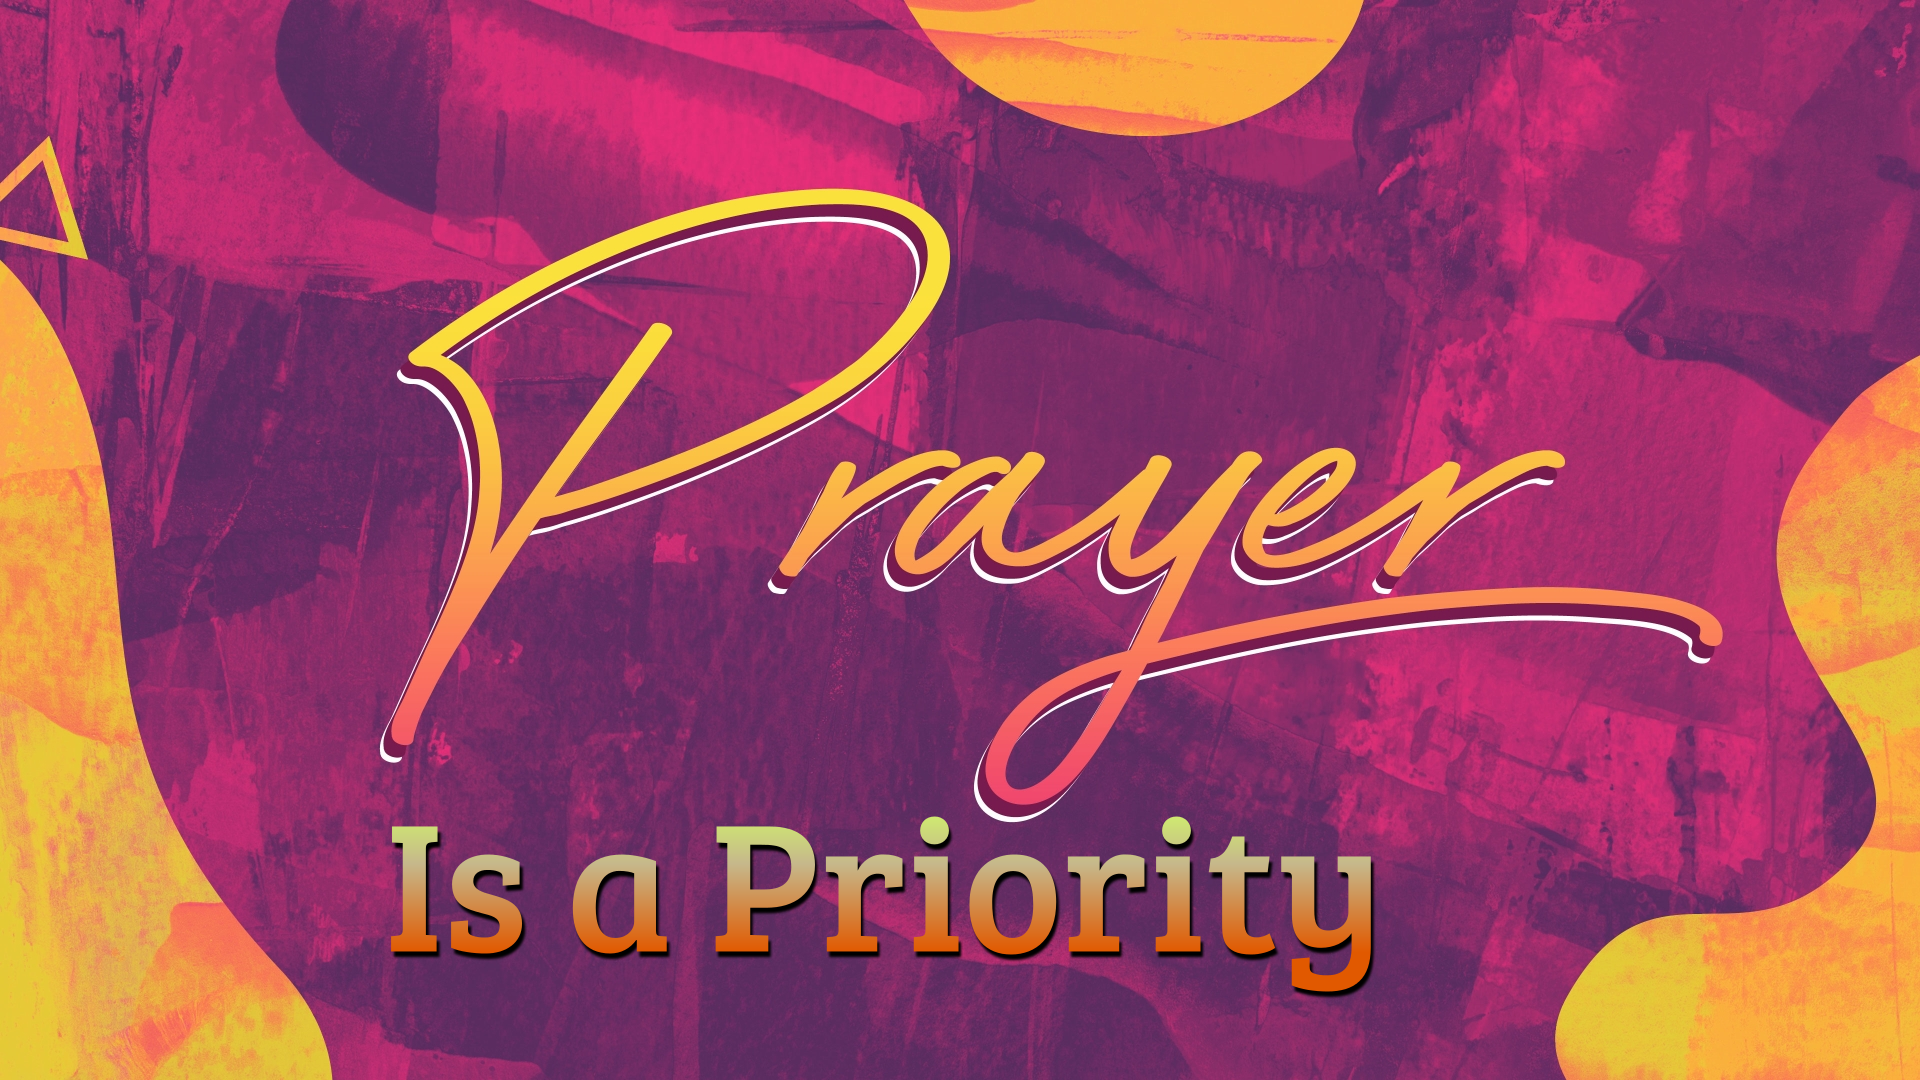 Prayer Is a Priority